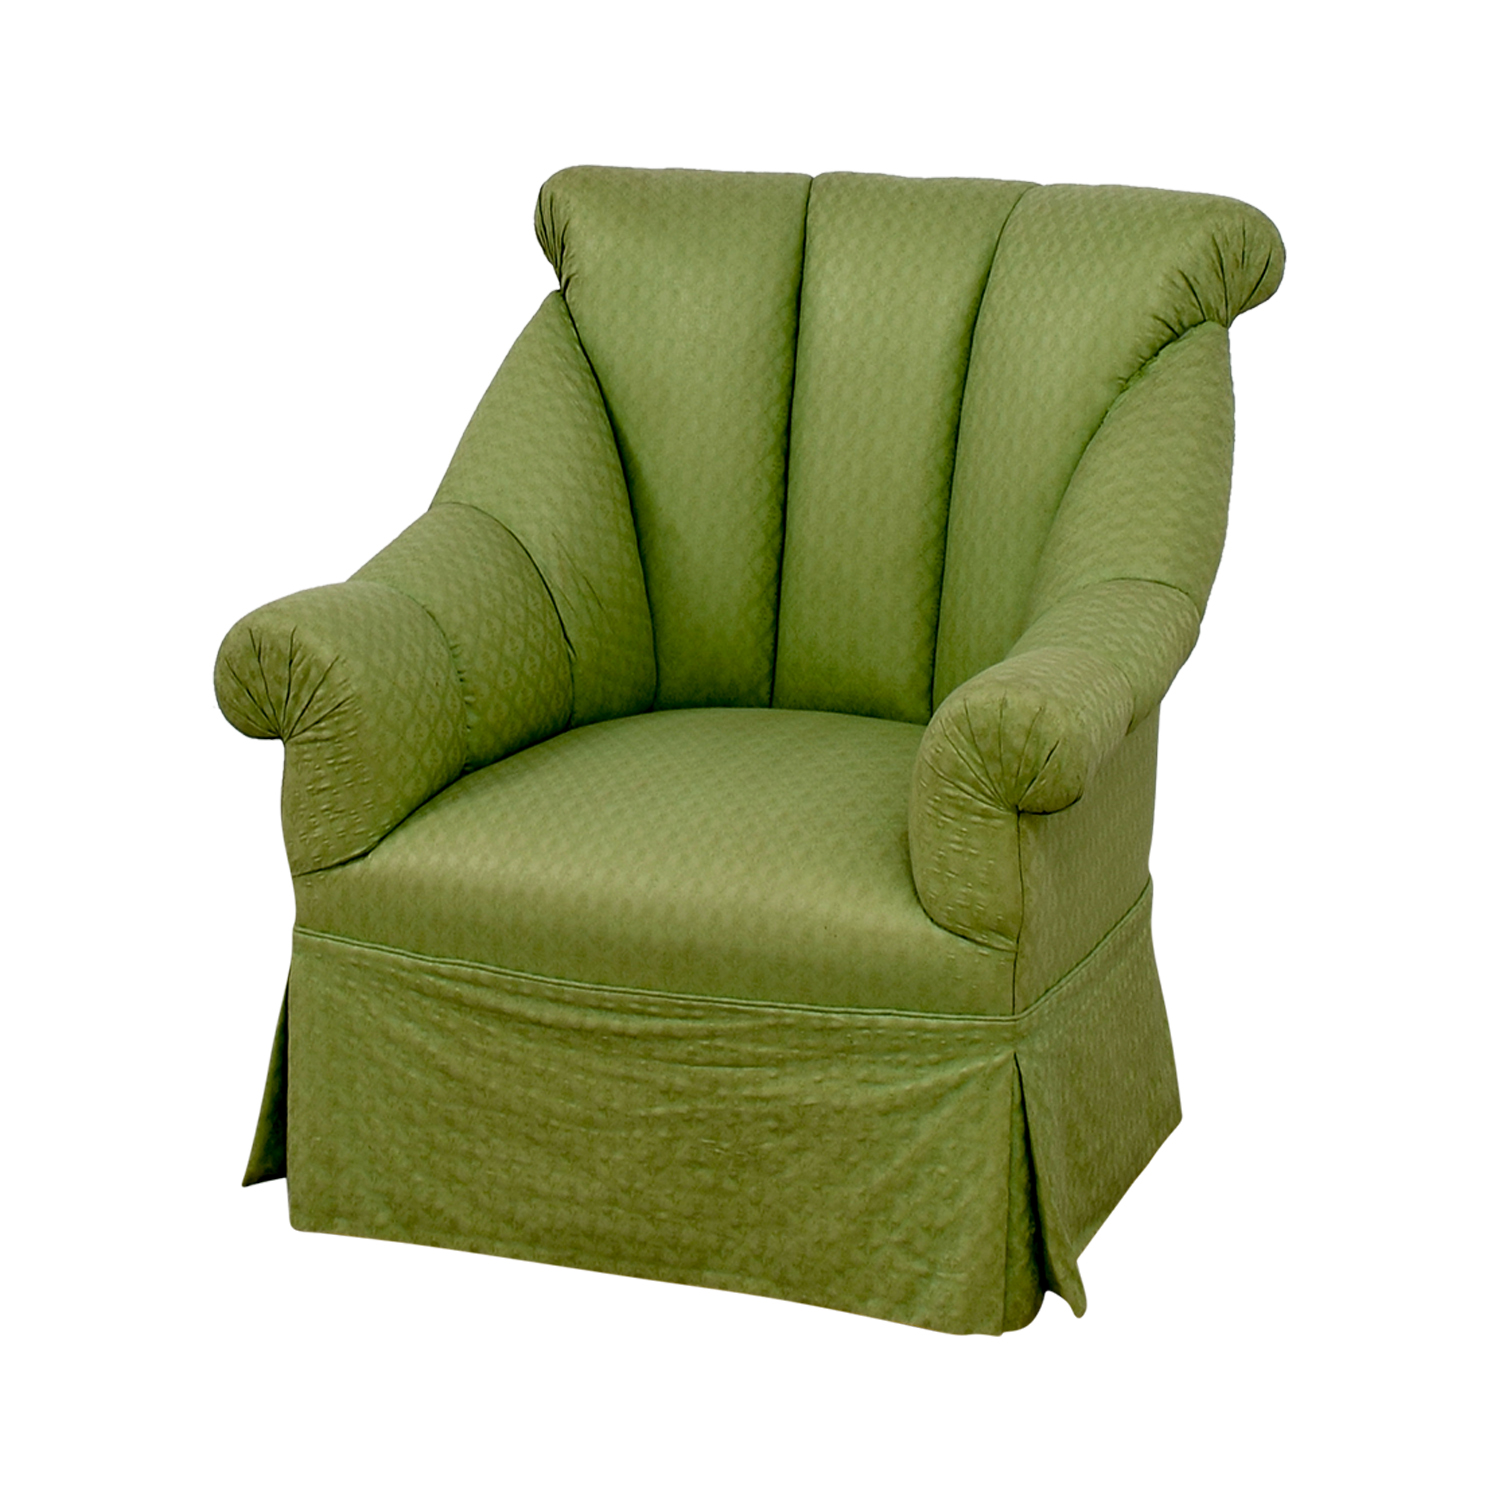 shop Furniture Masters Furniture Masters Green Skirted Armchair online